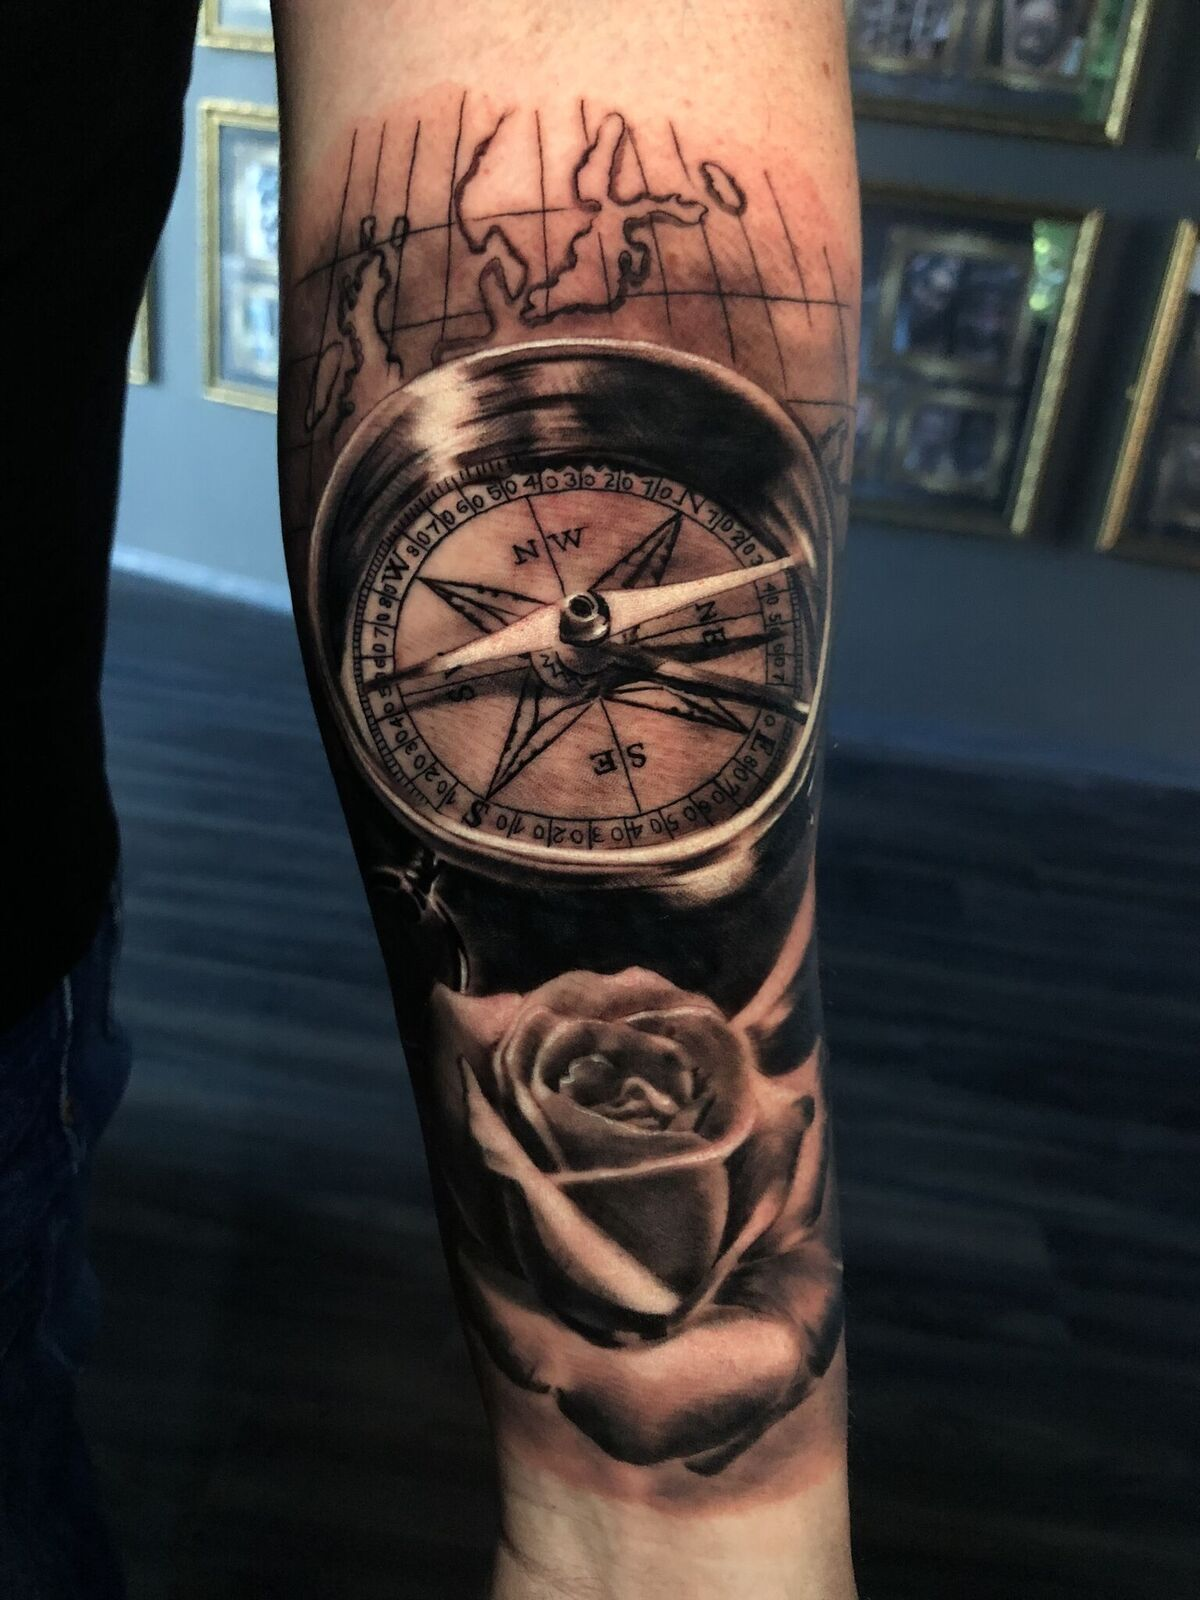 Pin By R O Y On Tattoo Ideas In 2020 Compass Rose Tattoo Compass Tattoo Men Rose Tattoos For Men